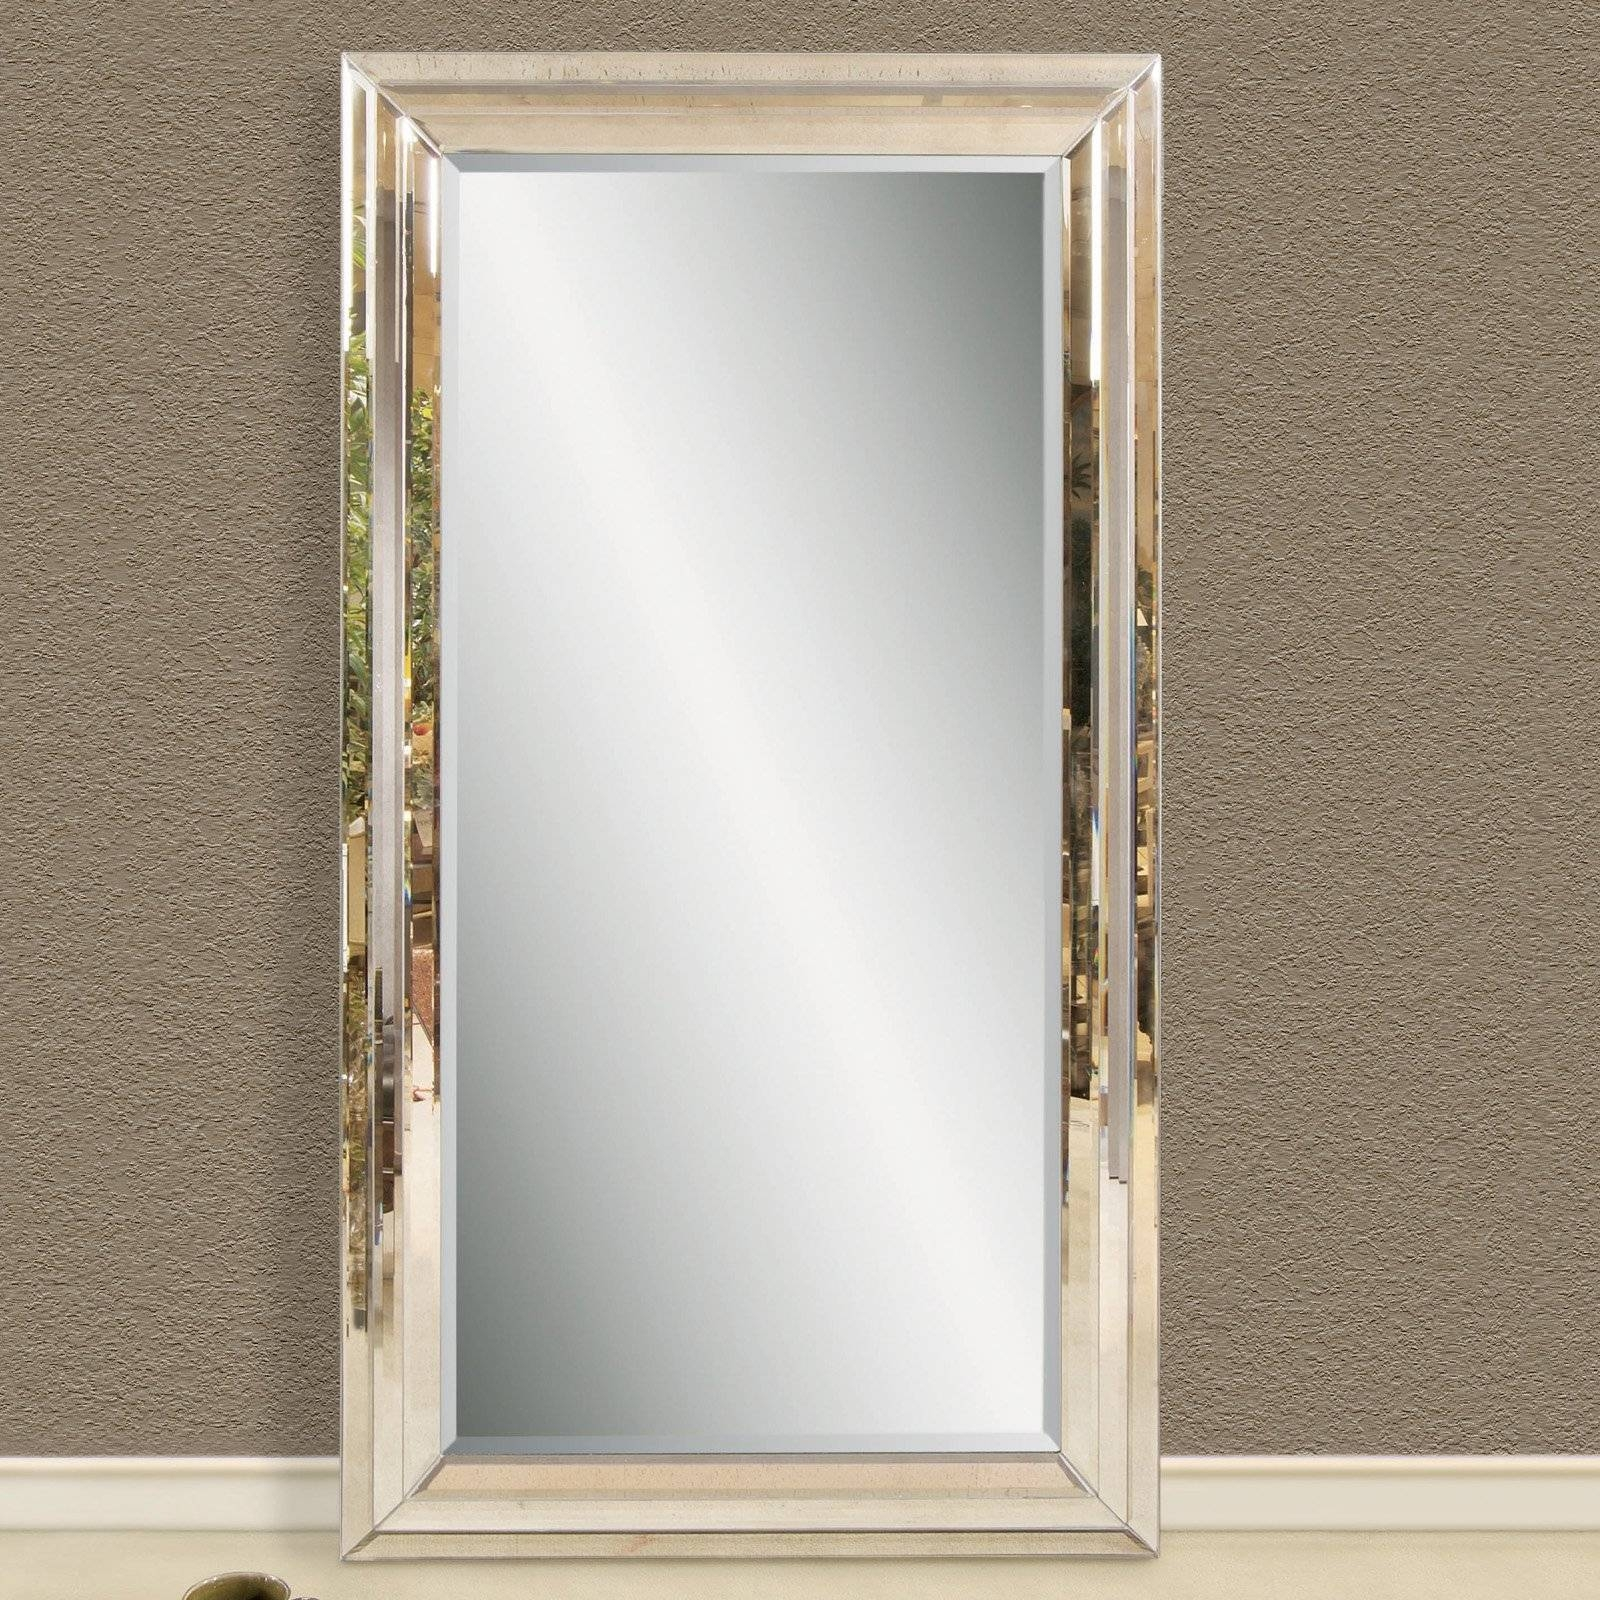 Flooring : Extra Large Leaning Floor Mirror Standslarge Gold for Huge Mirrors for Cheap (Image 15 of 25)